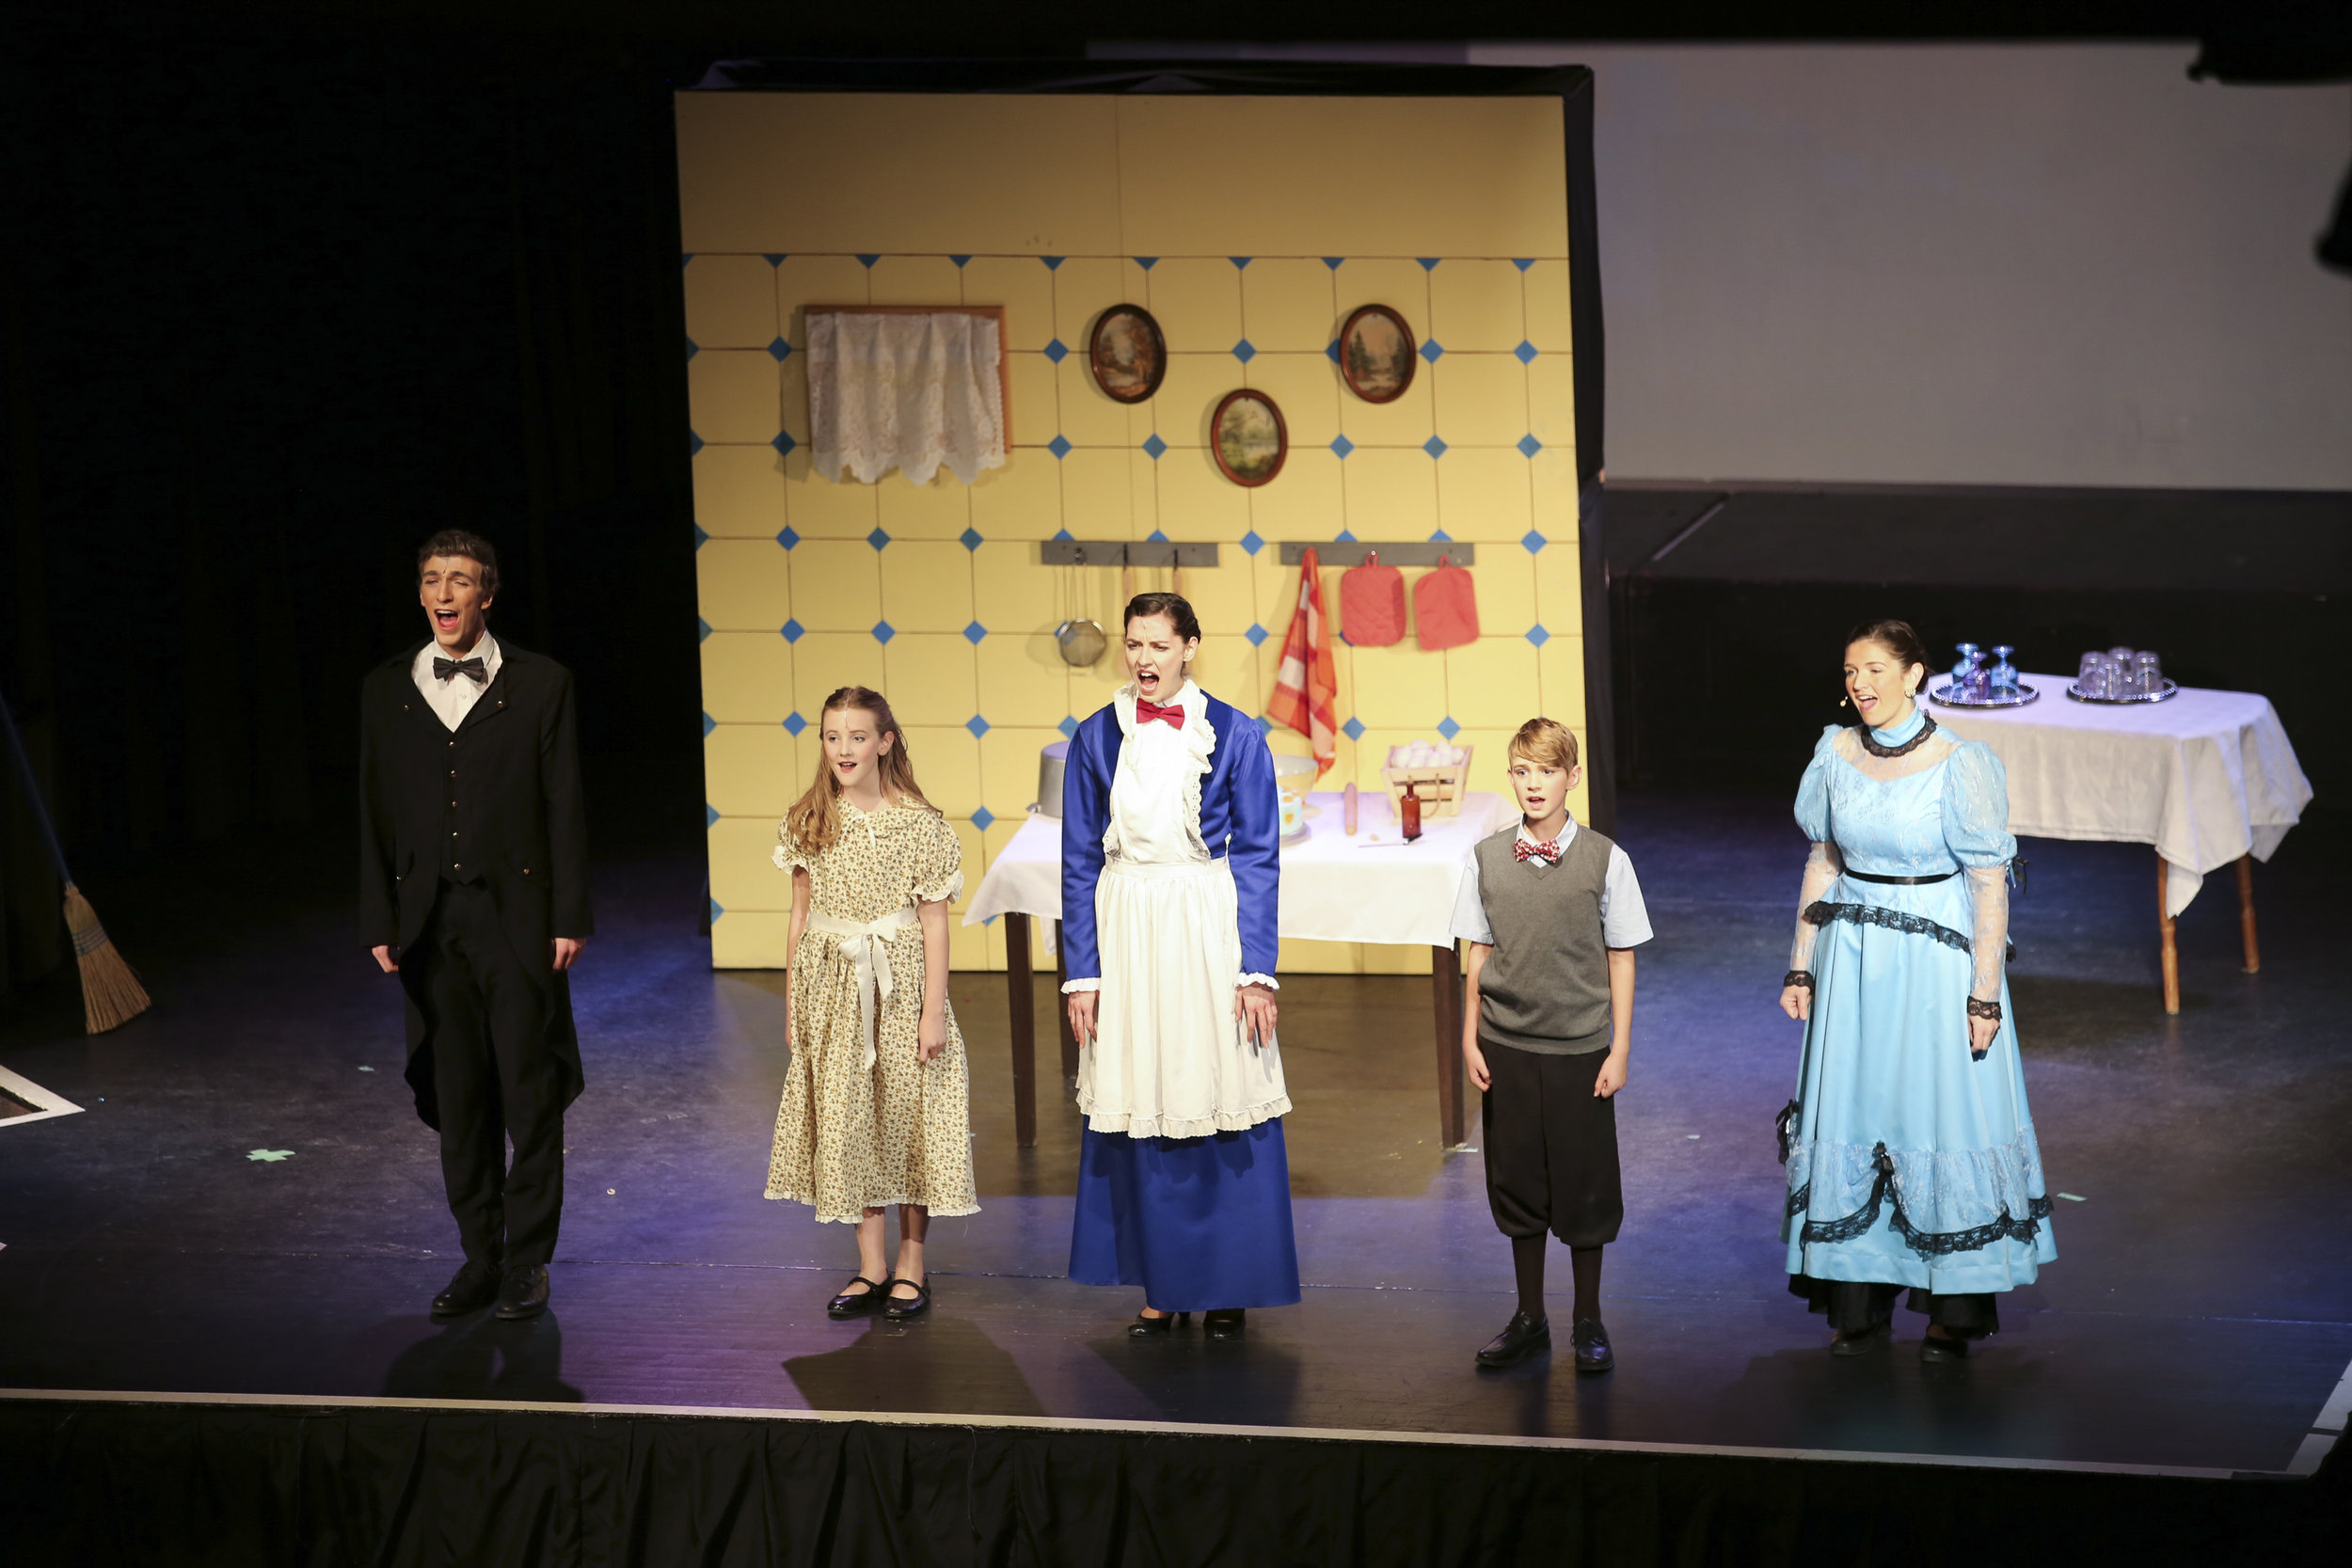 Mary Poppins - Streetlight Theatre Company - Final Showing - 27 Oct '18 - 101.JPG